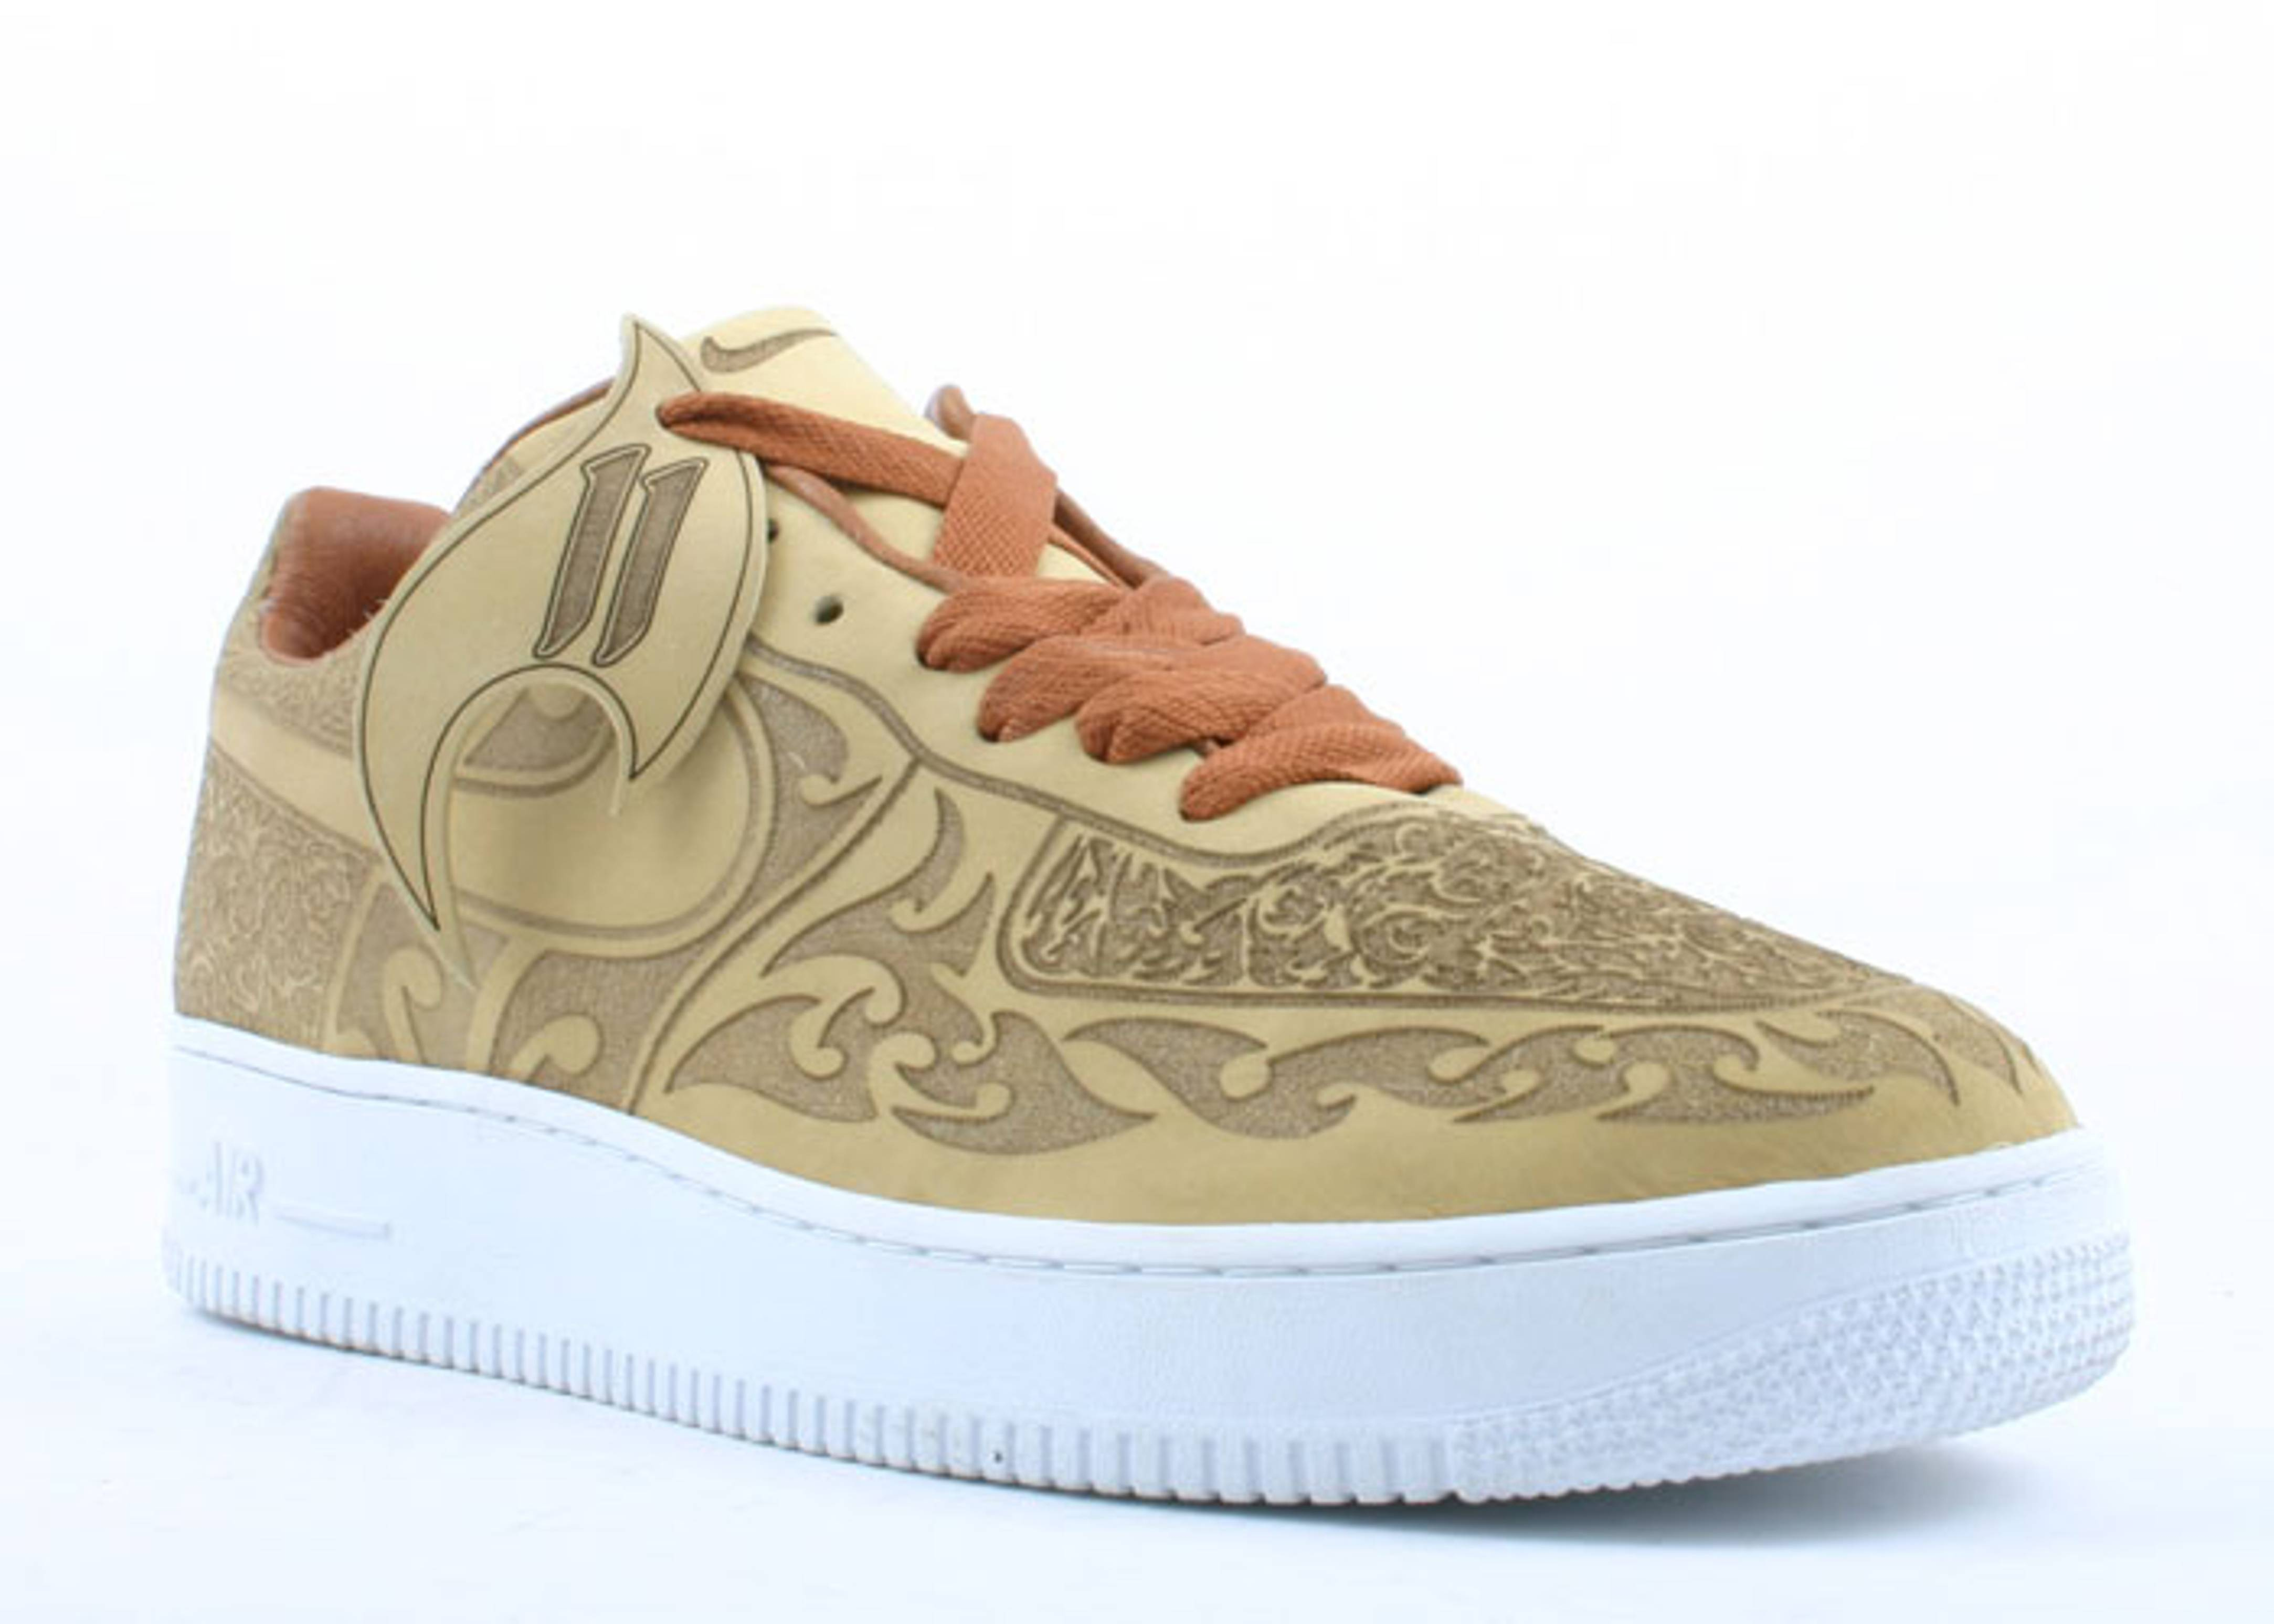 Nike Air Force 1 Low Mark Smith Cashmere Laser Sneakers (Cashmere/Cashmere-British Tan-White)